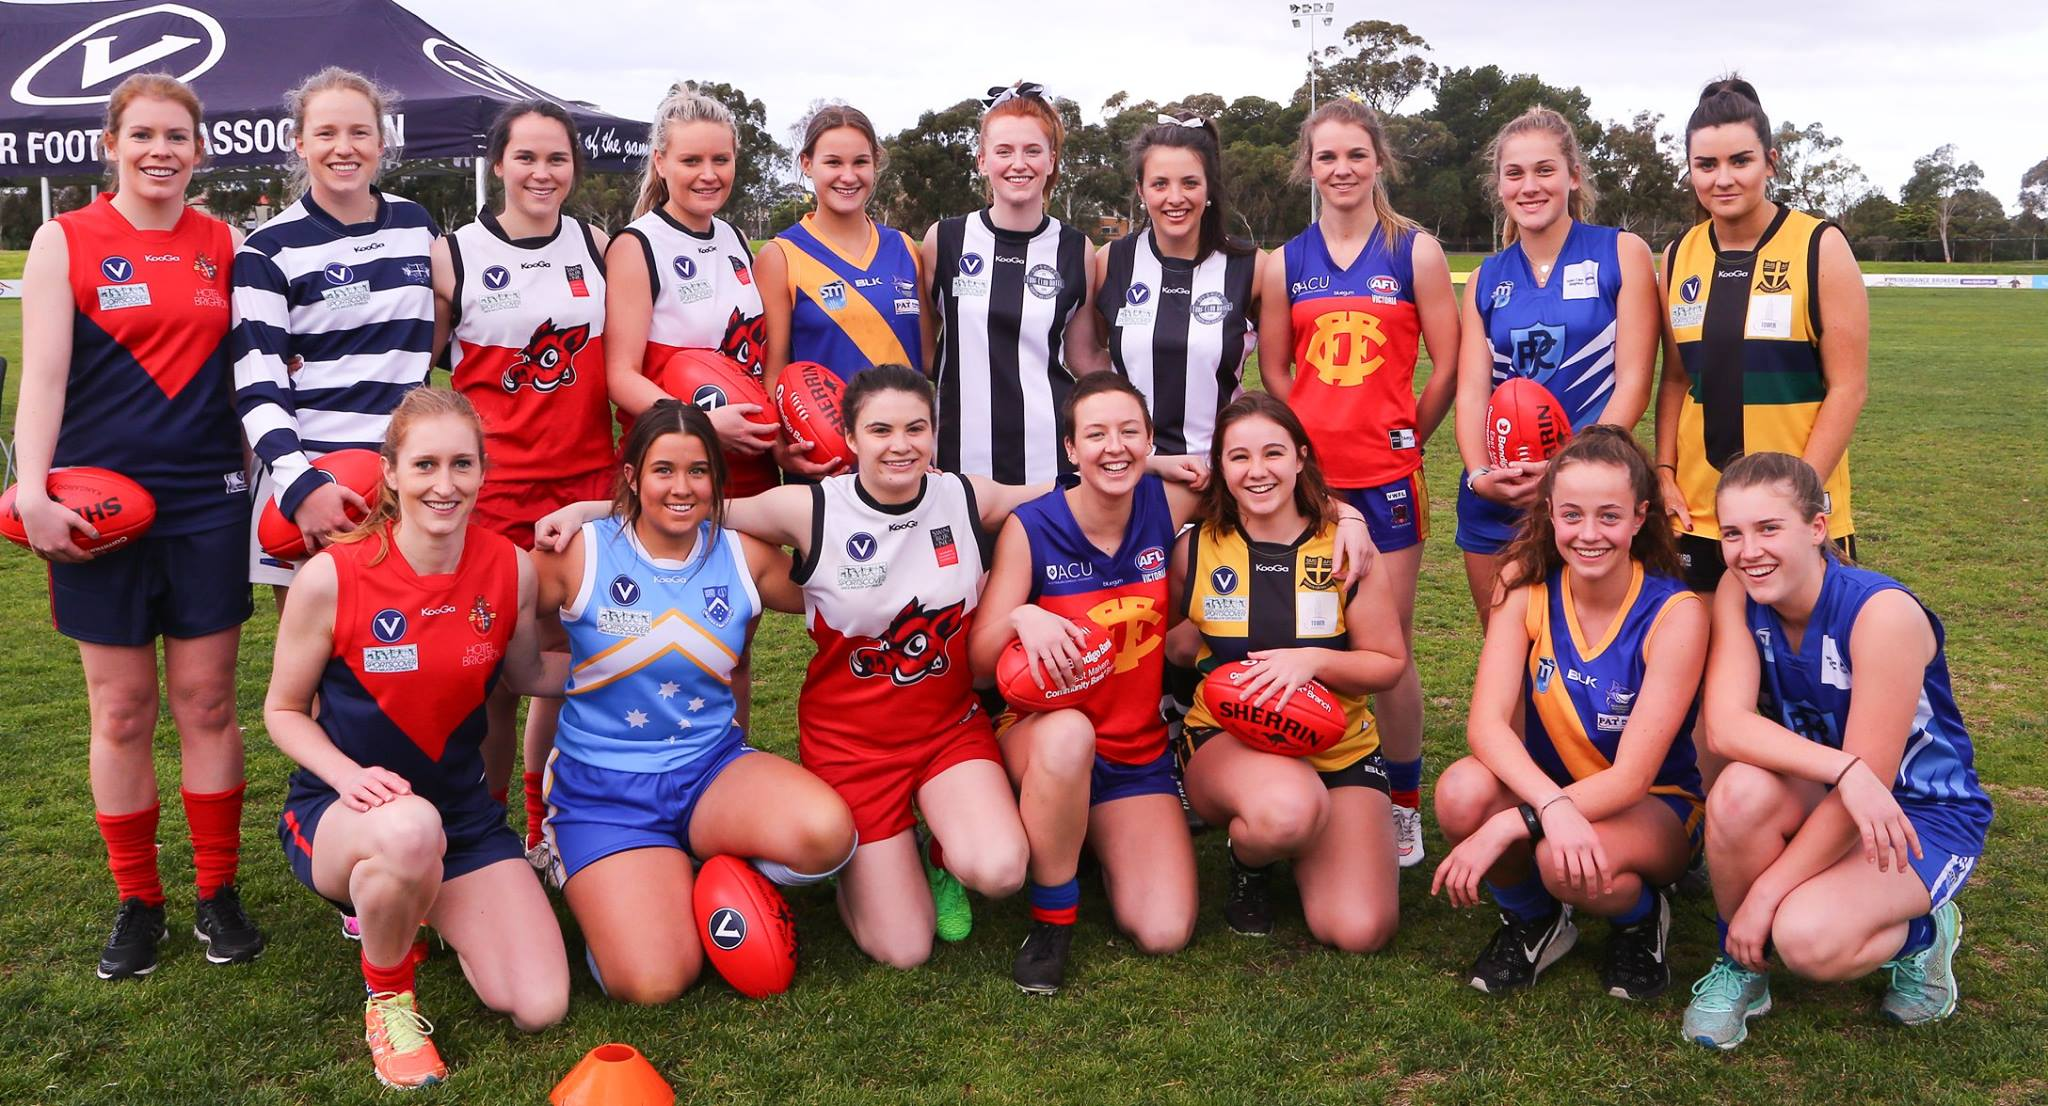 VAFA launches 2017 women's league